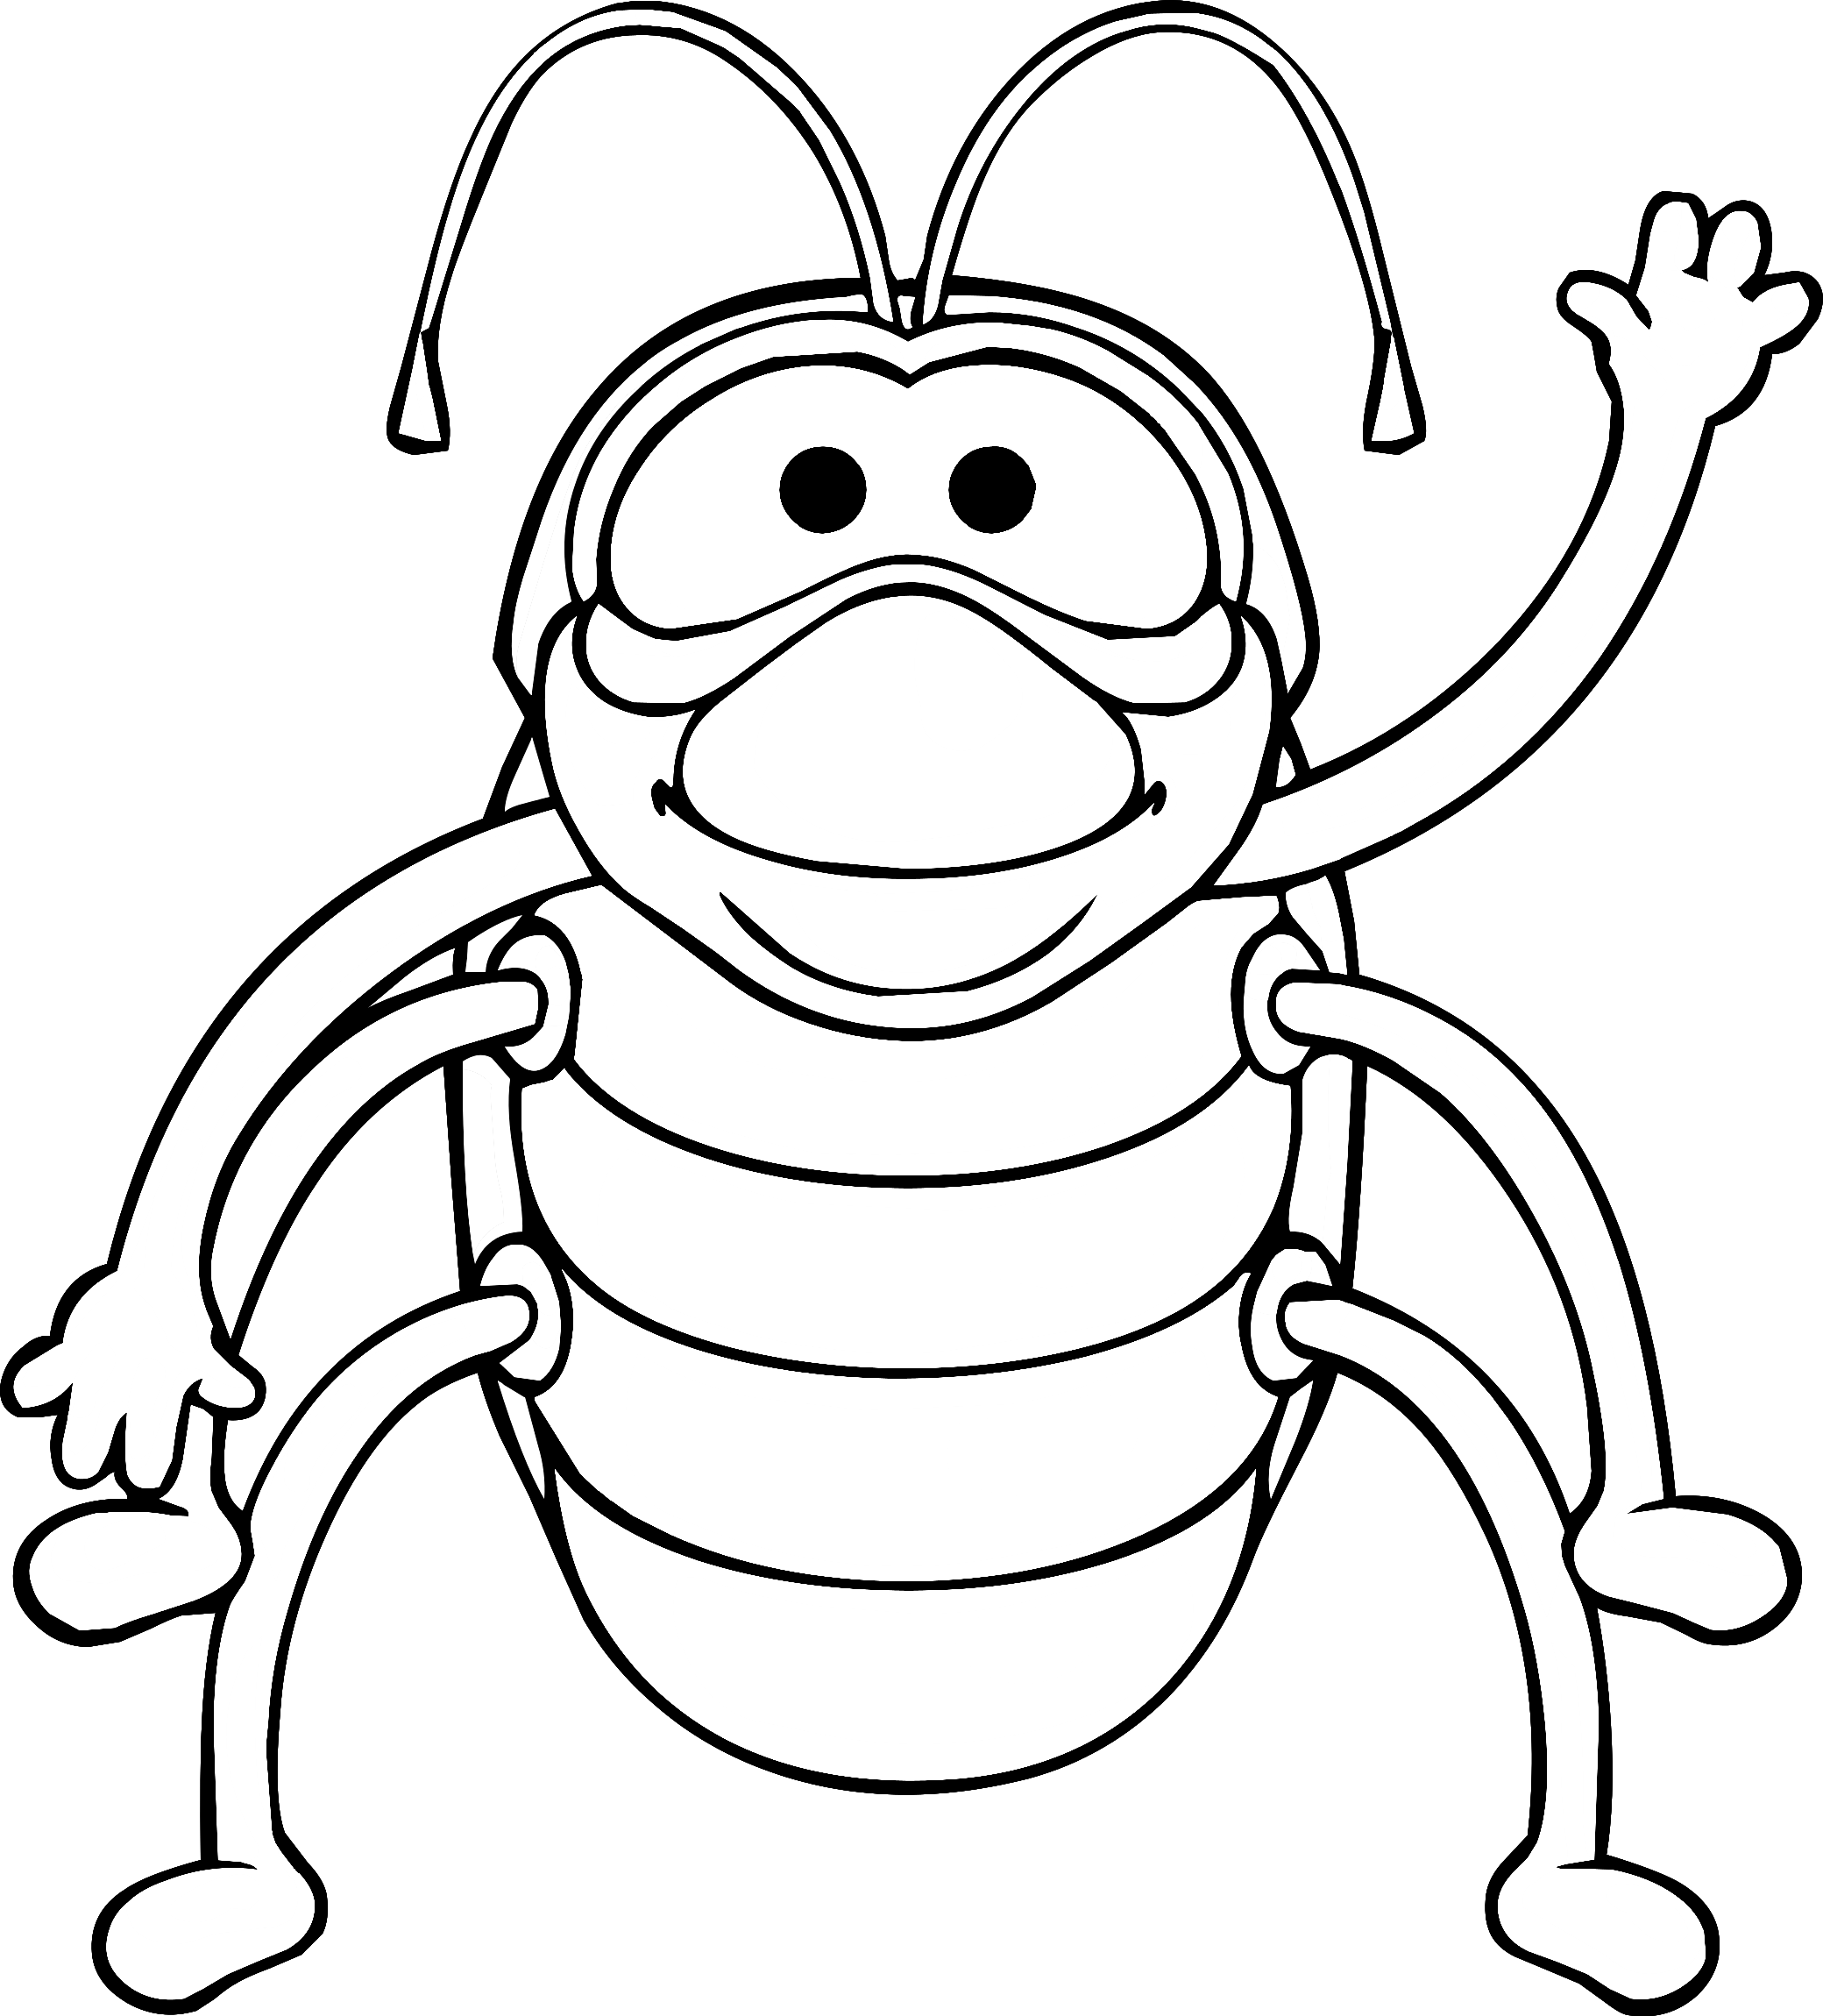 coloring pages bugs - pill bug coloring page coloring coloring pages